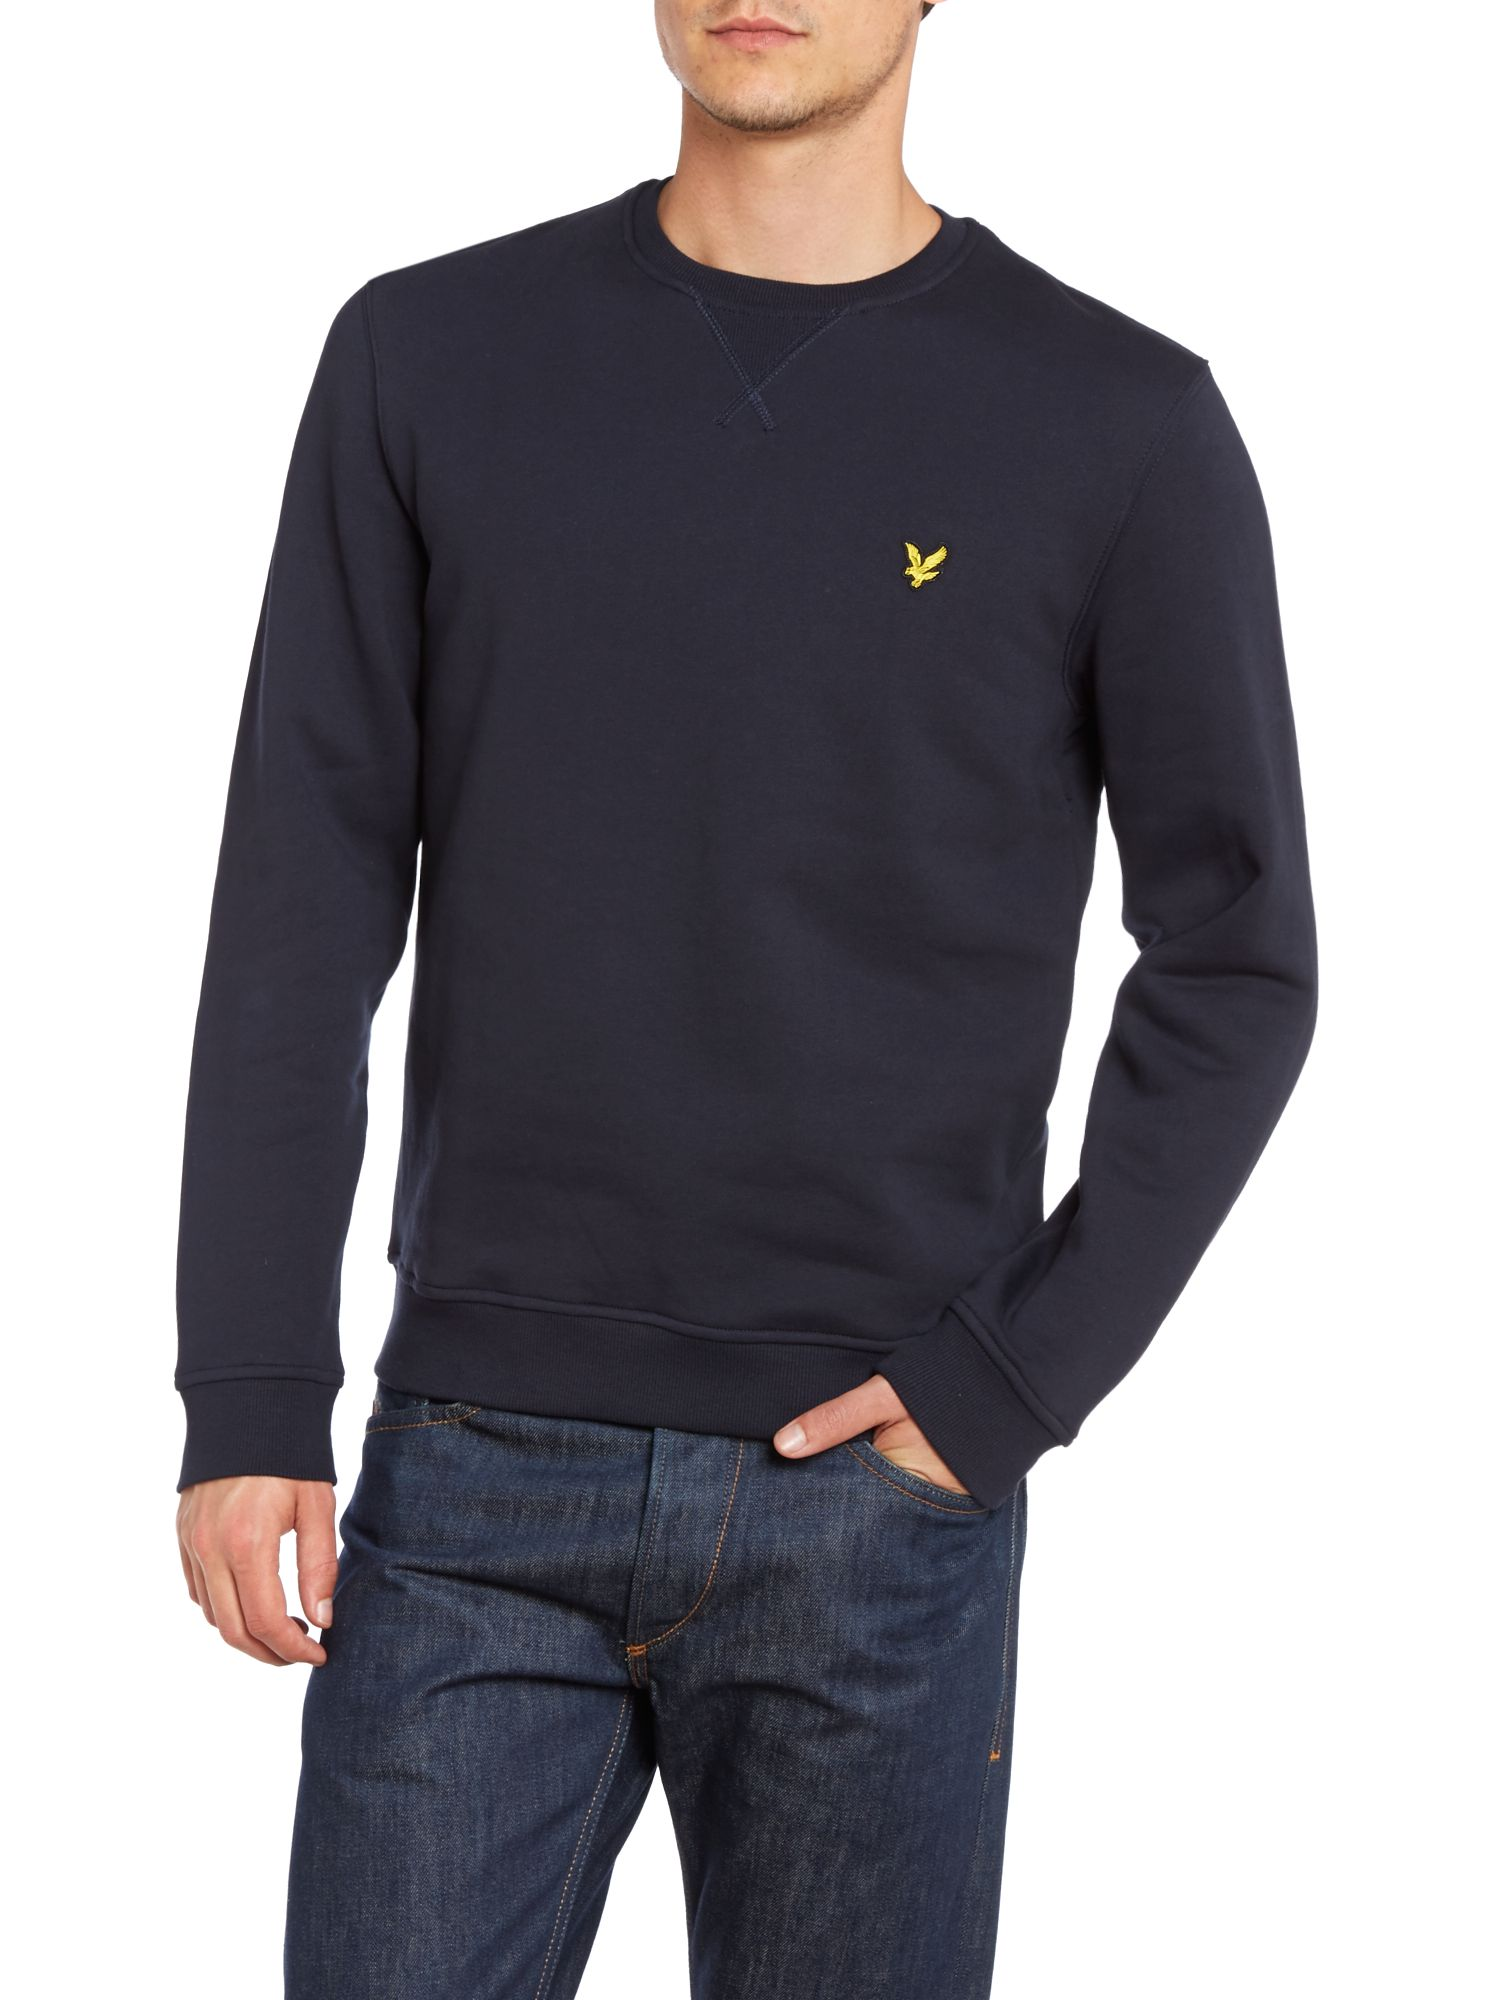 Long sleeve crew neck sweat shirt